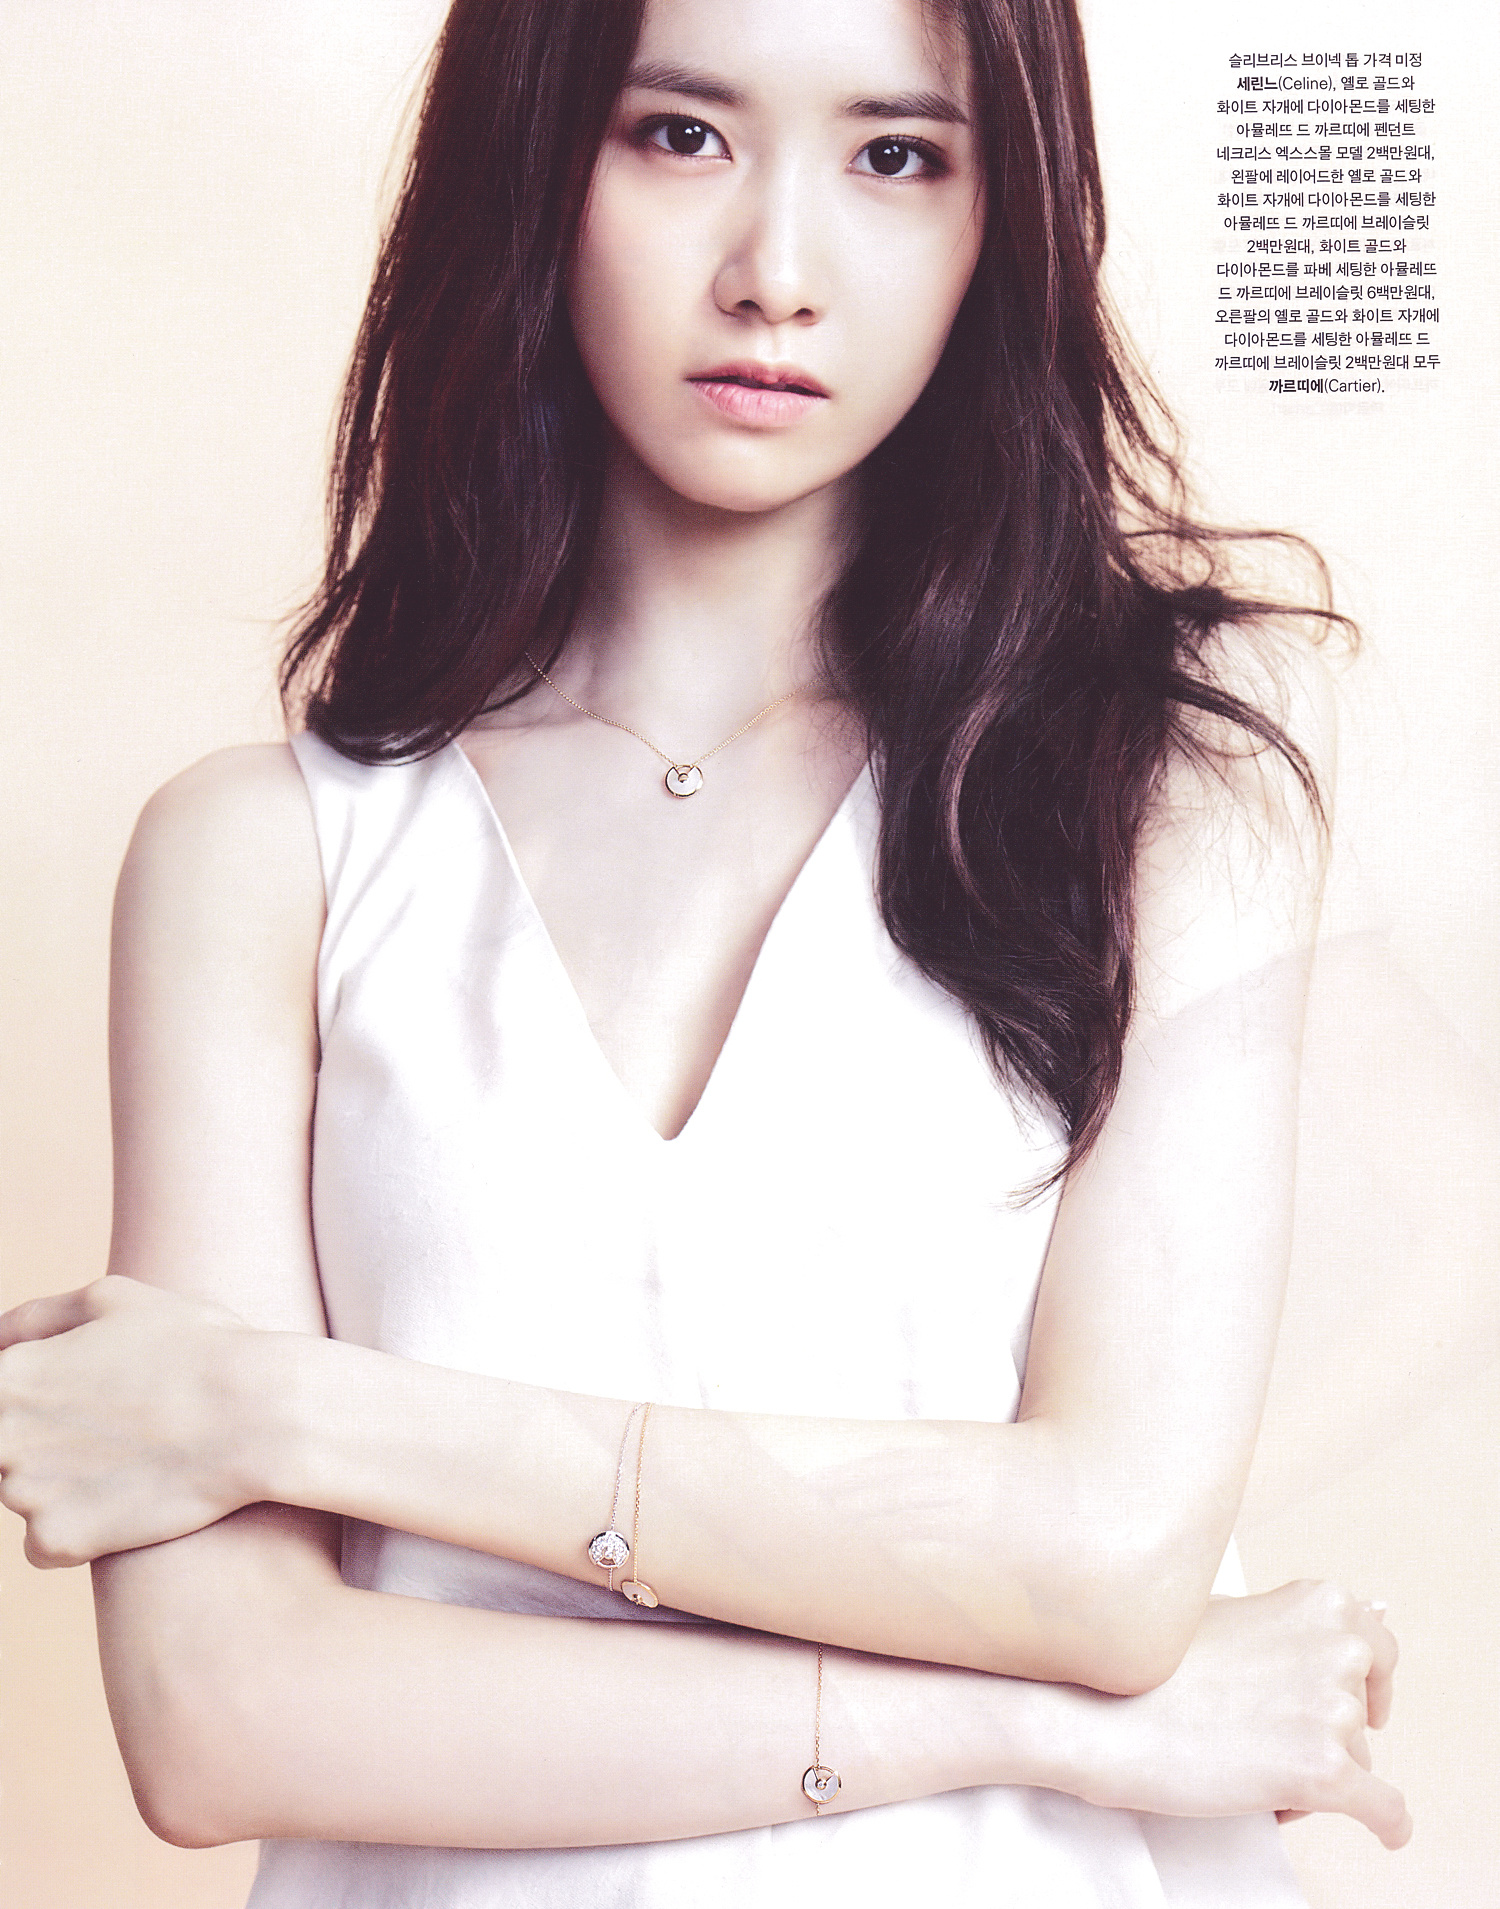 Yoona Instyle Magazine Yoona Snsd Marie Clarie Magazine April Scan By